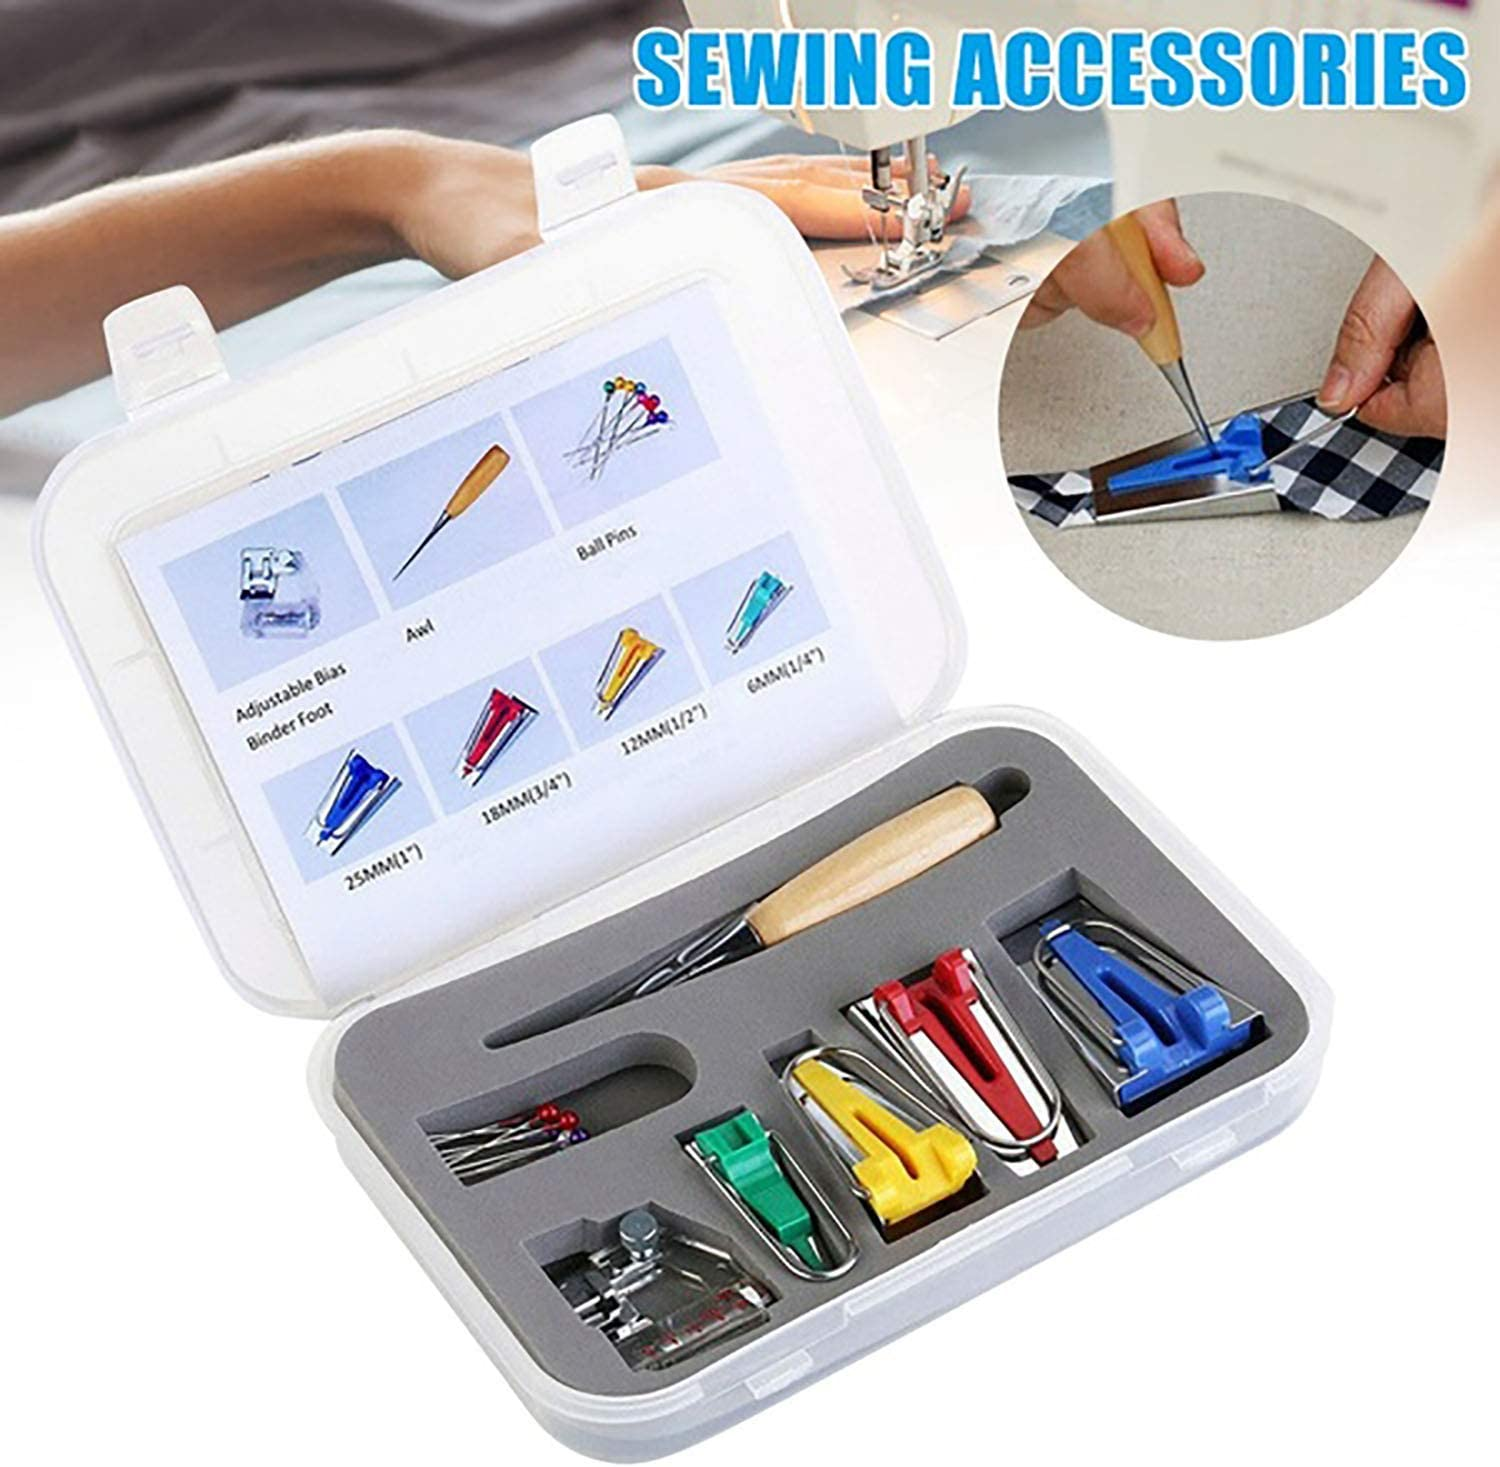 Patchwork Sewing Accessories for Sewing Quilting Awl and Binder Foot w//Case Tape Binding Presser Foot Quilting Awl Ball Pins Single//Double Fold Bias Tape Maker,Fabric Bias Tape Maker Tools